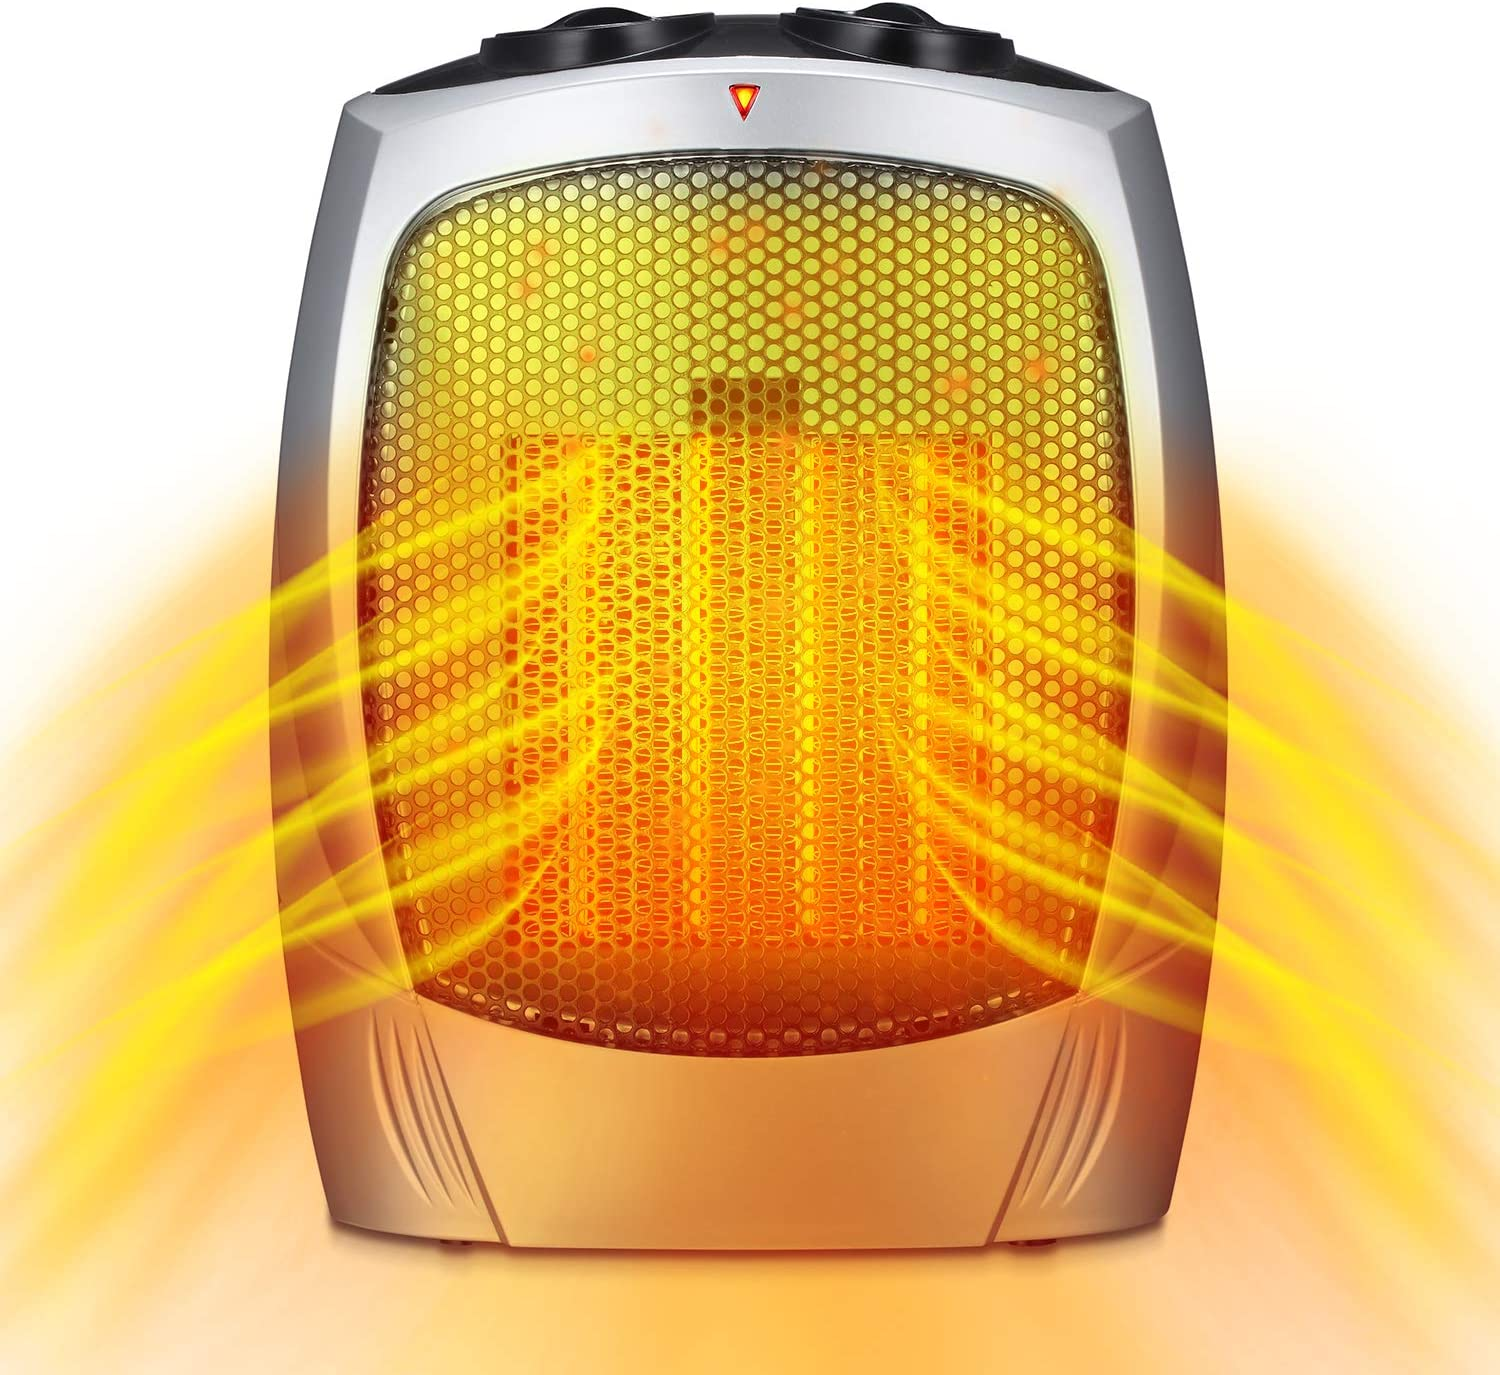 Antarctic Star Portable Electric Space Heater, 1500W/750W ETL Certified Ceramic Small Heater with Thermostat, Quiet for Office Room Desk Indoor Use Home and Office